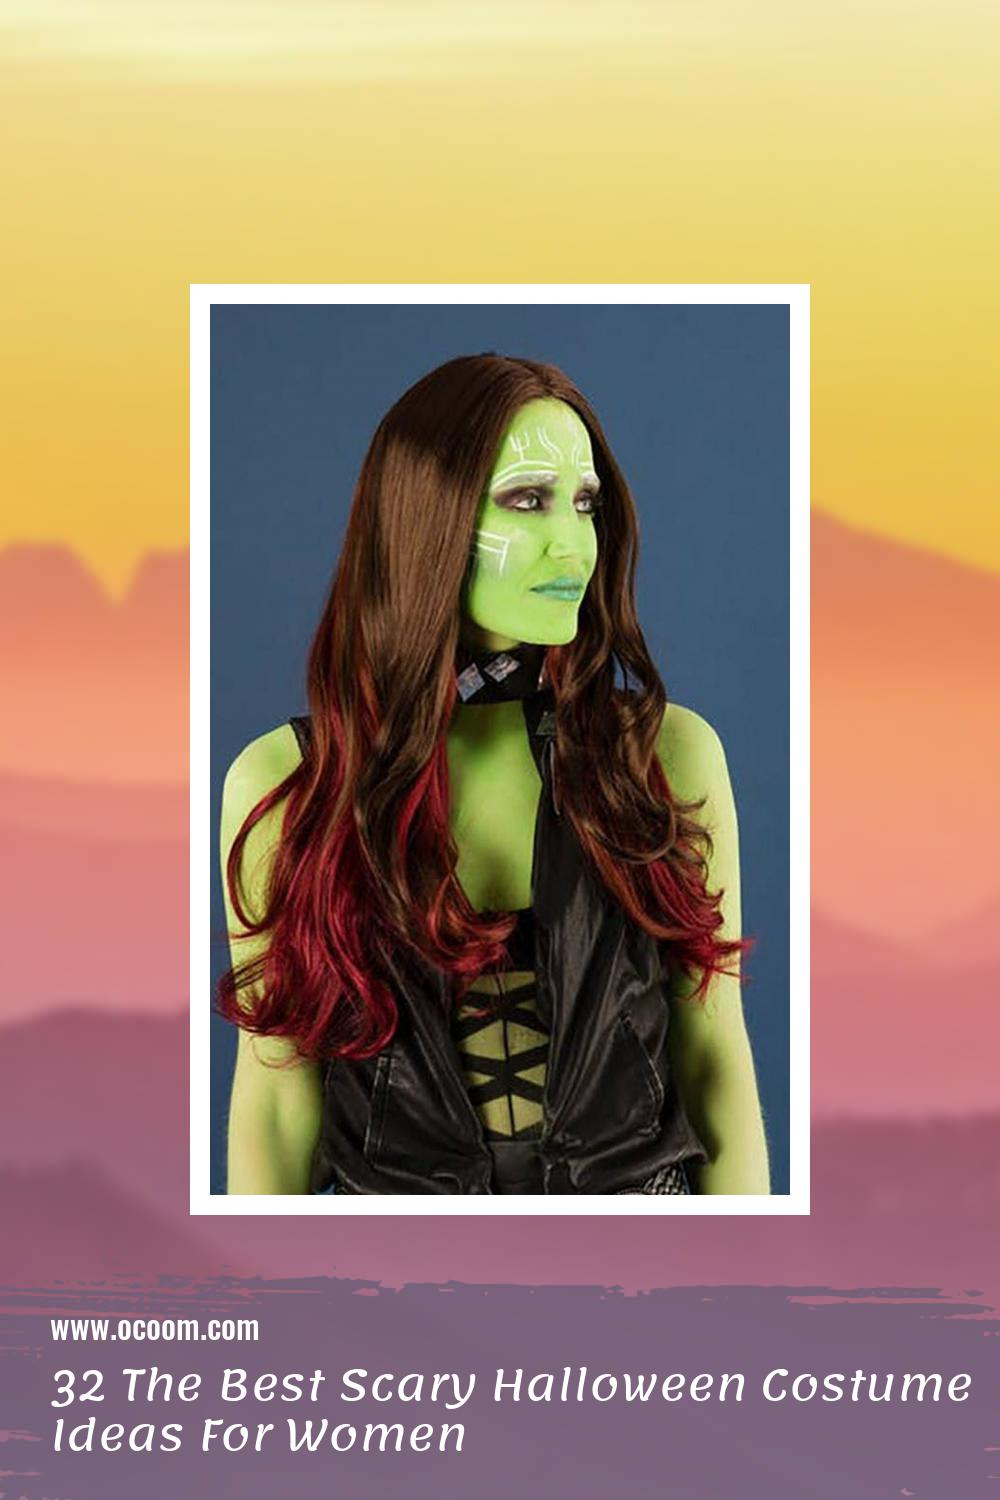 32 The Best Scary Halloween Costume Ideas For Women 61